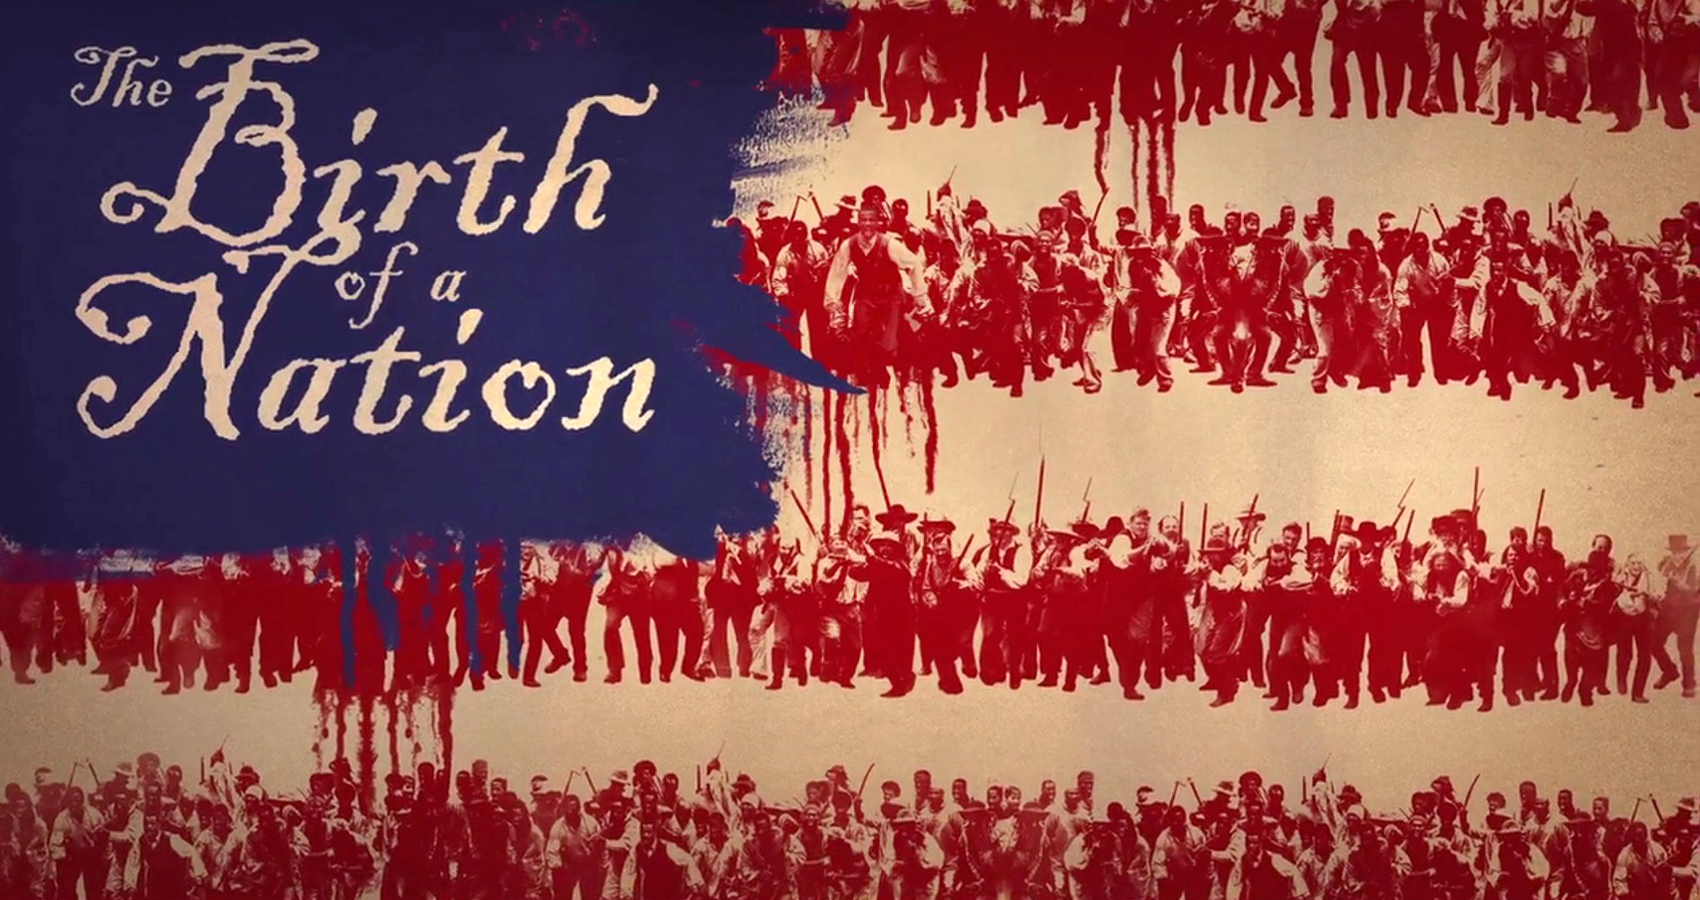 Birth of a Nation by Anne G at Spillwords.com at Spillwords.com